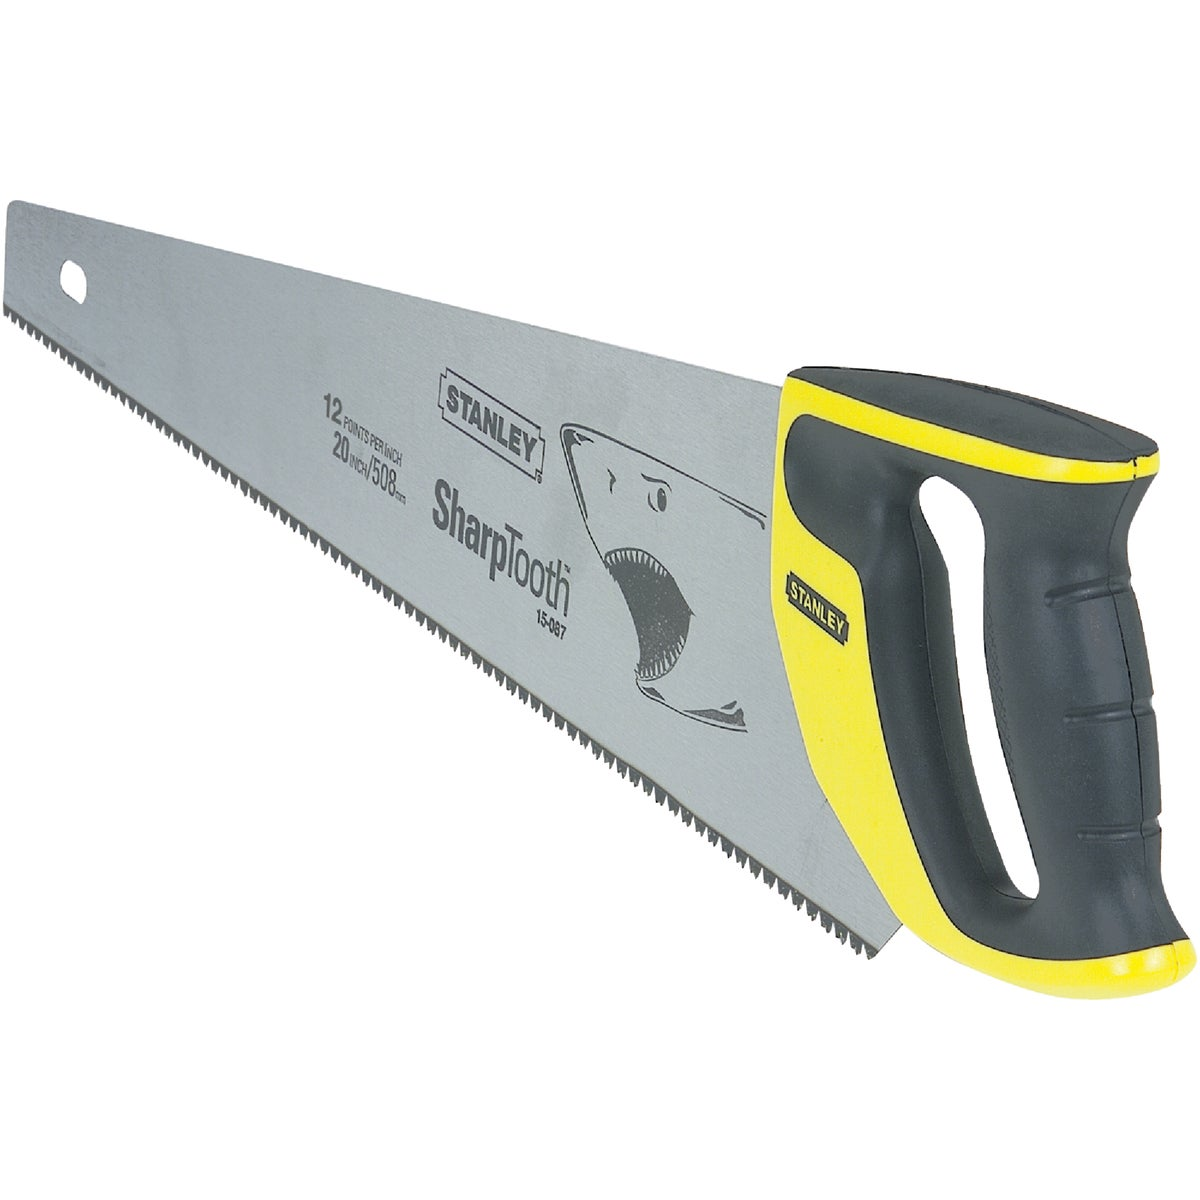 "20"" SHARPTOOTH SAW - 20-527 by Stanley Tools"